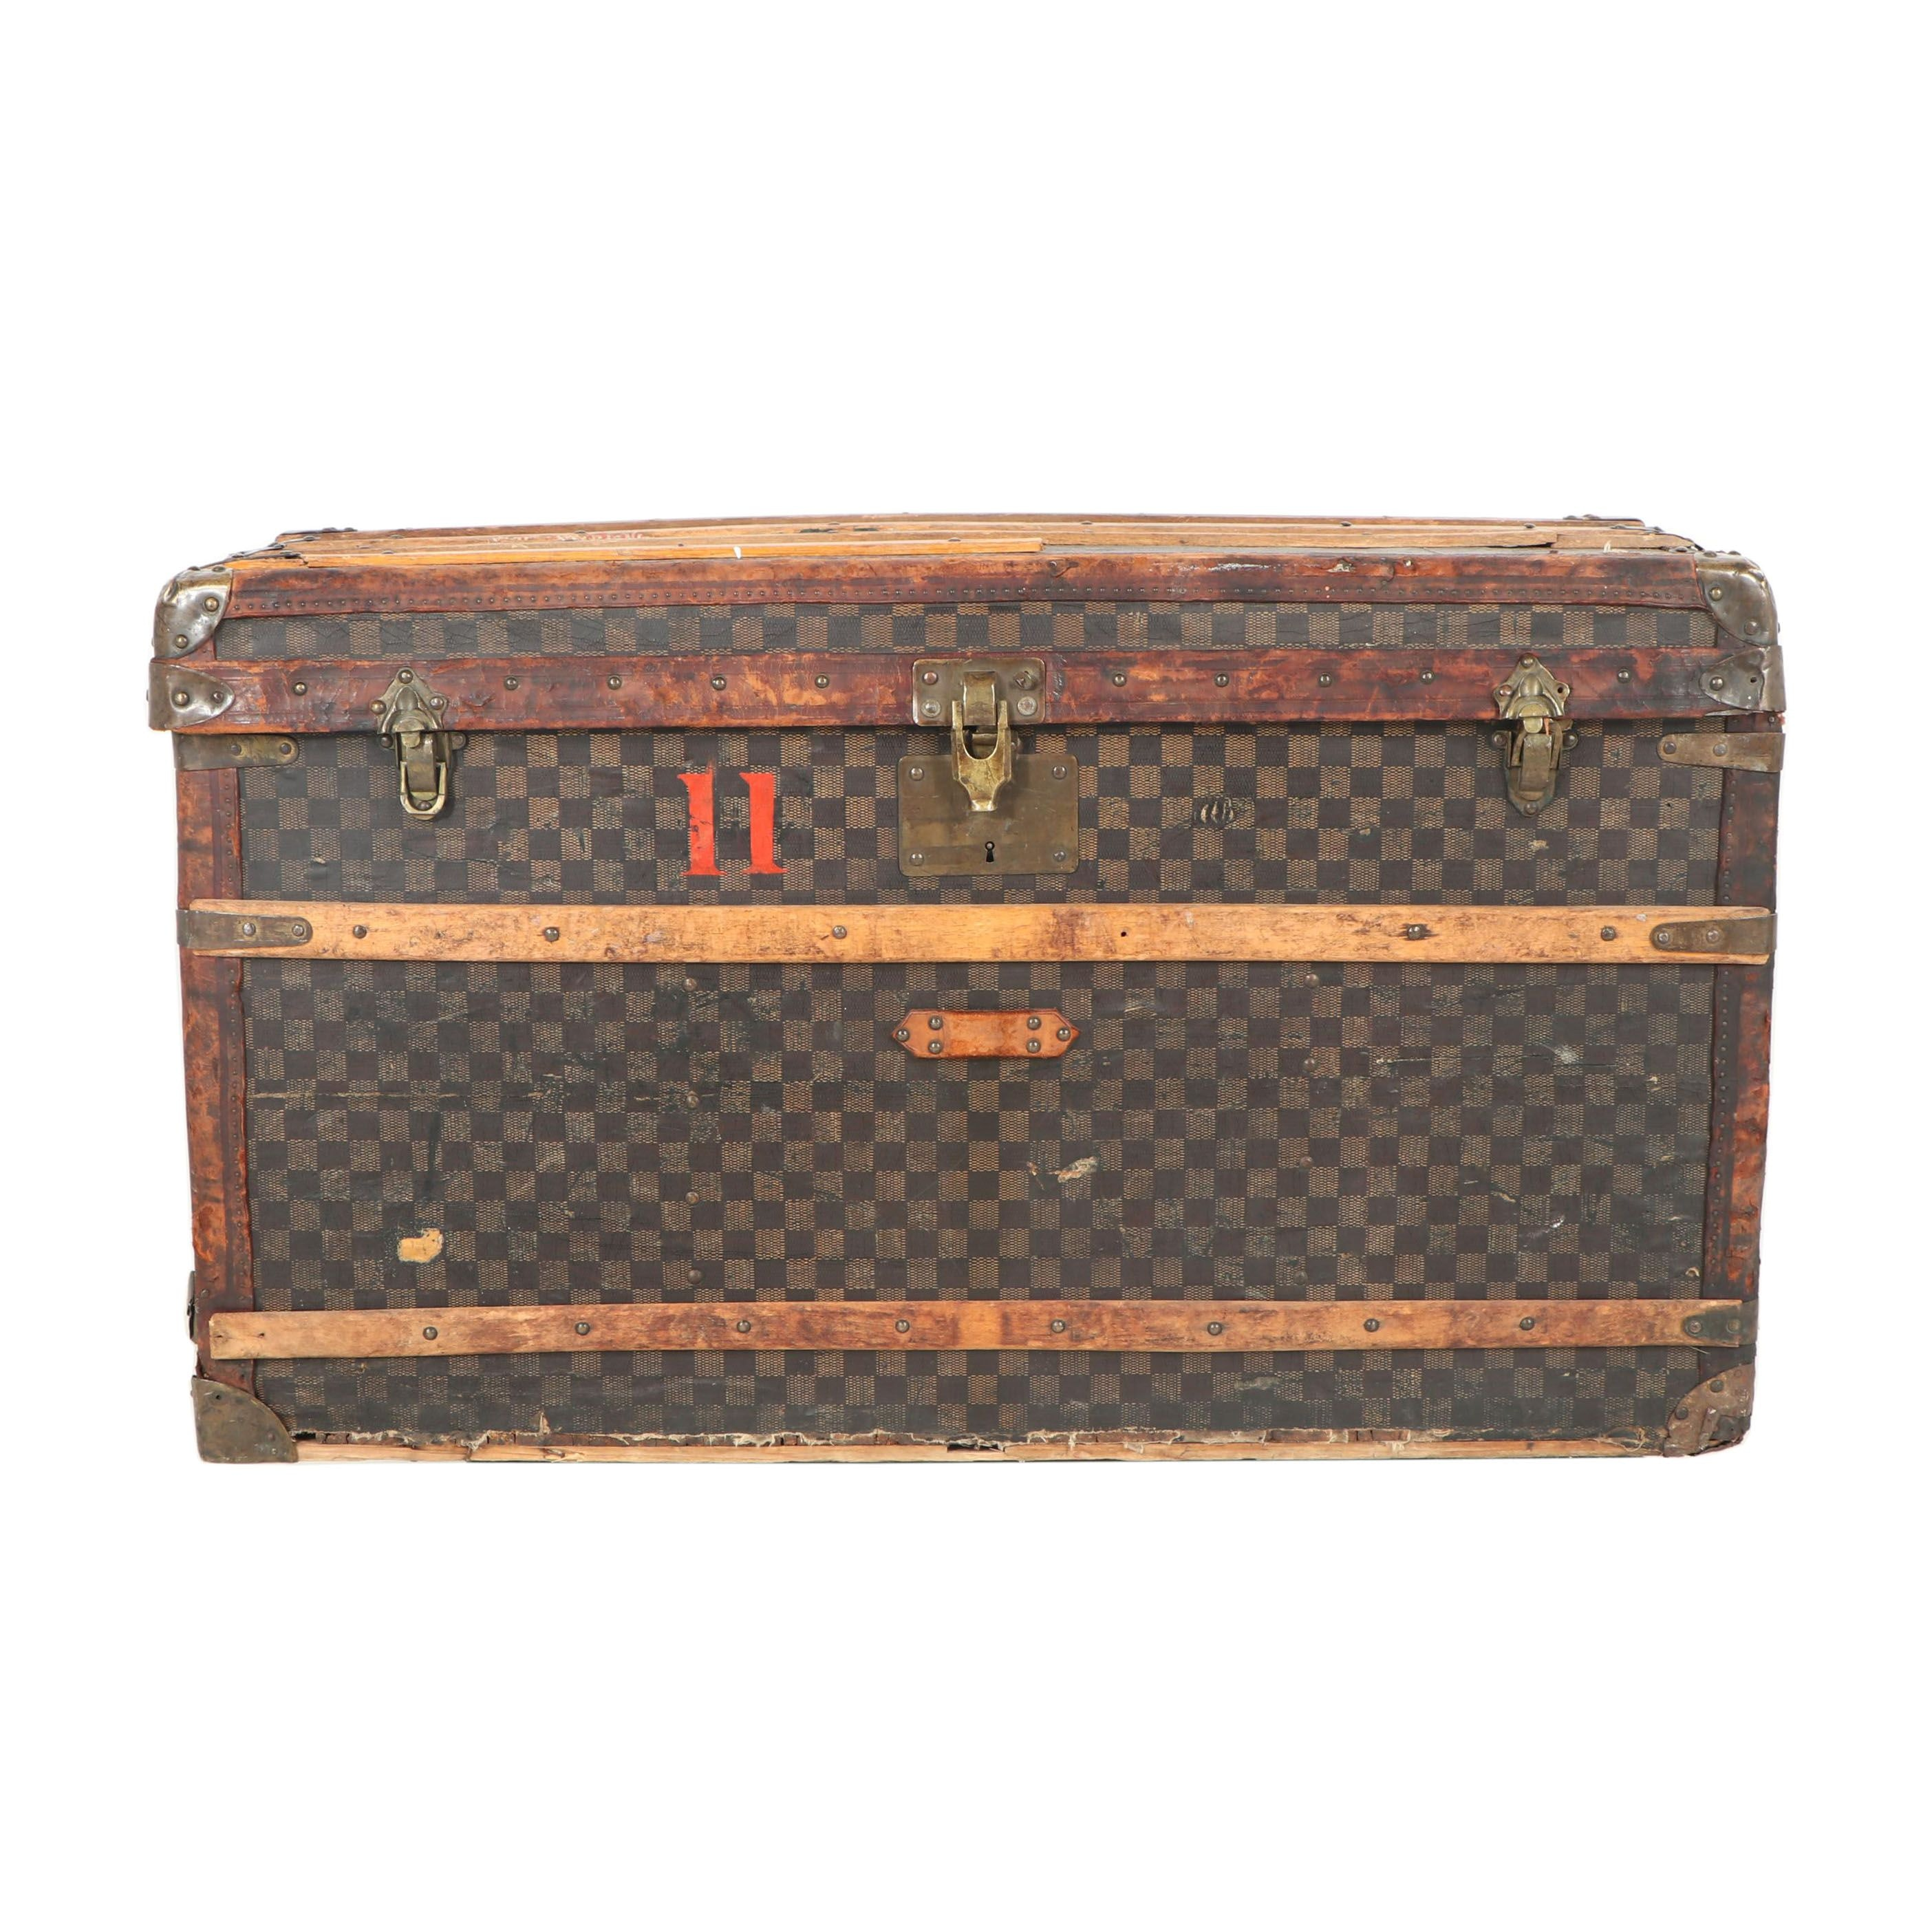 Louis Vuitton Damier Ebene Canvas Steamer Trunk, Late 19th Century